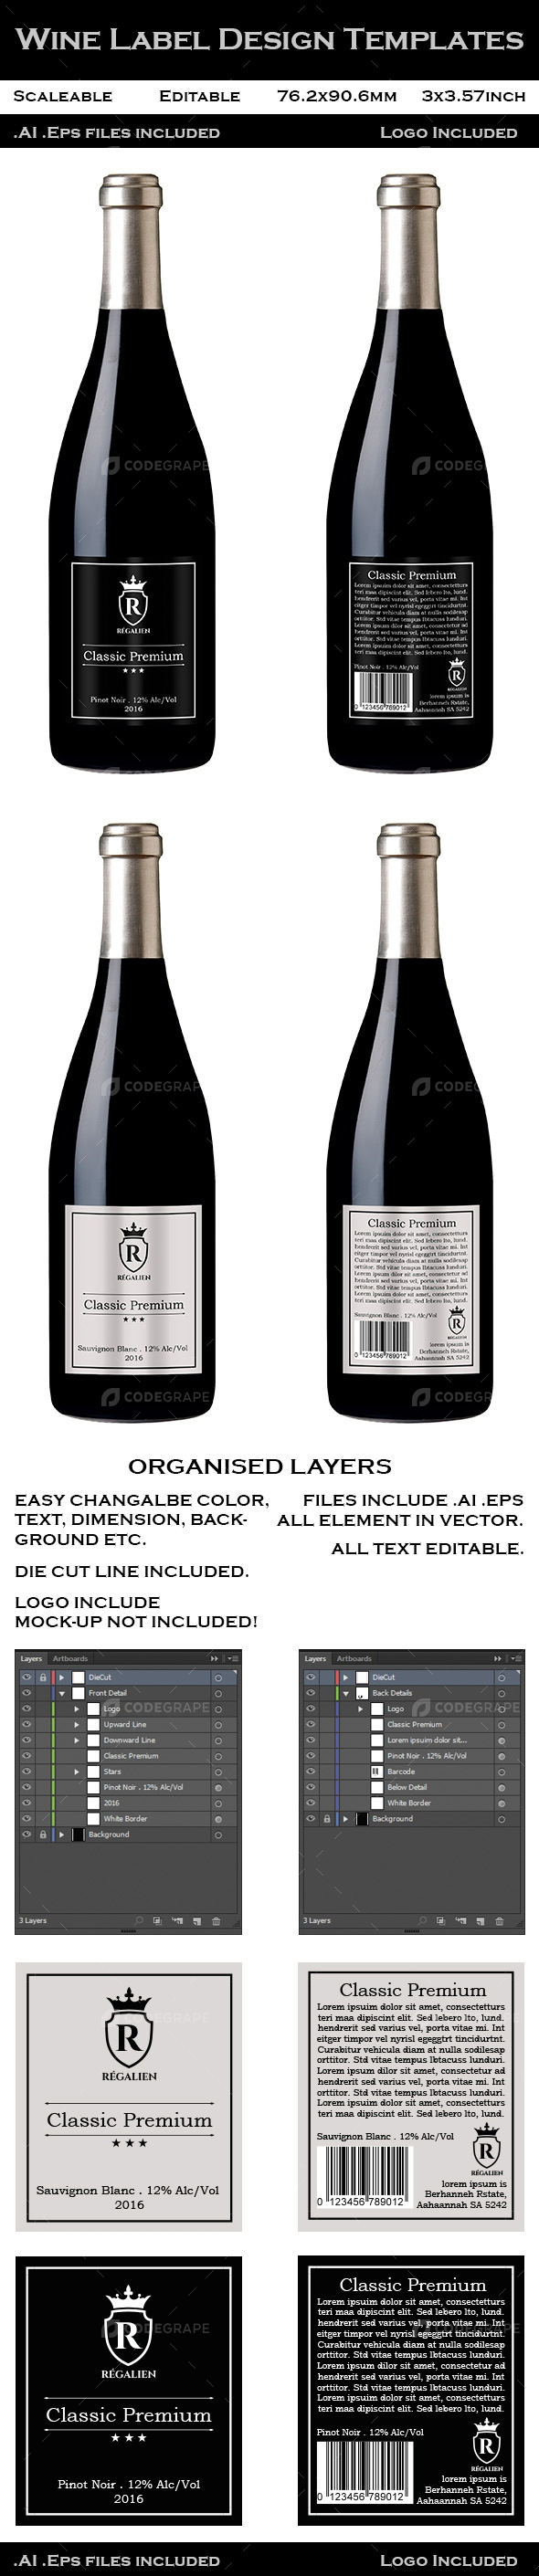 Wine Label Design Templates